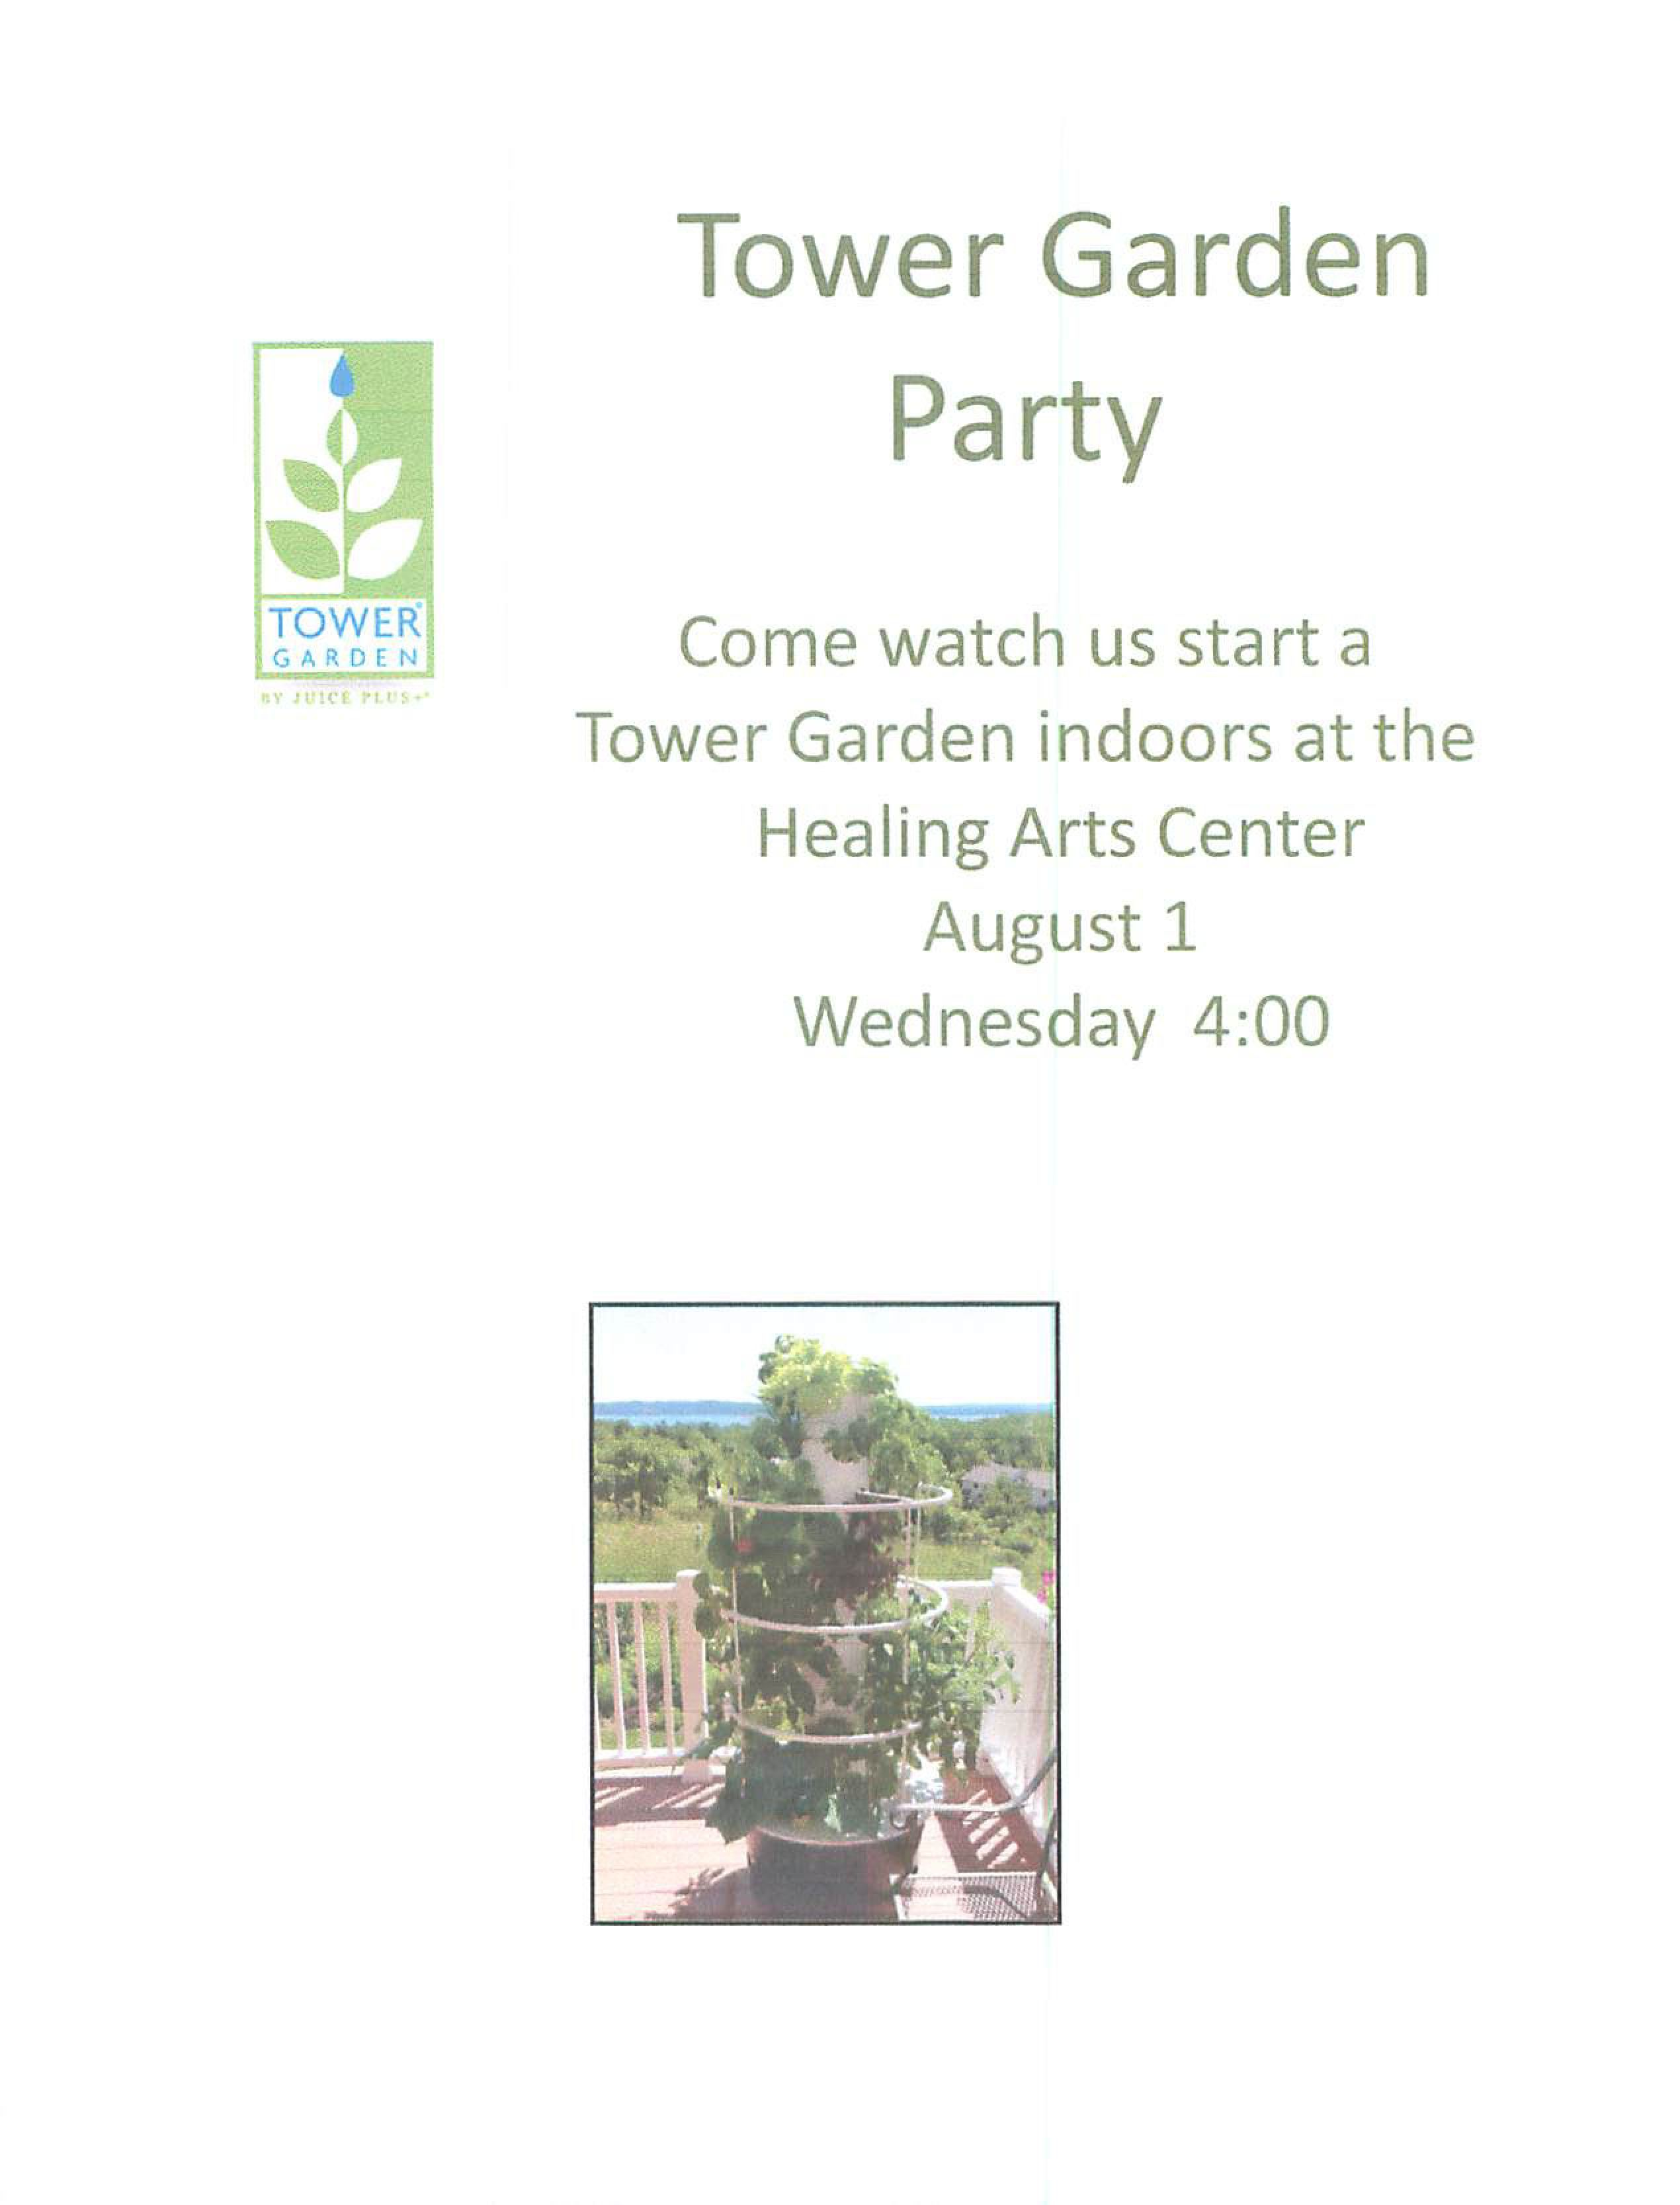 Tower Garden Party